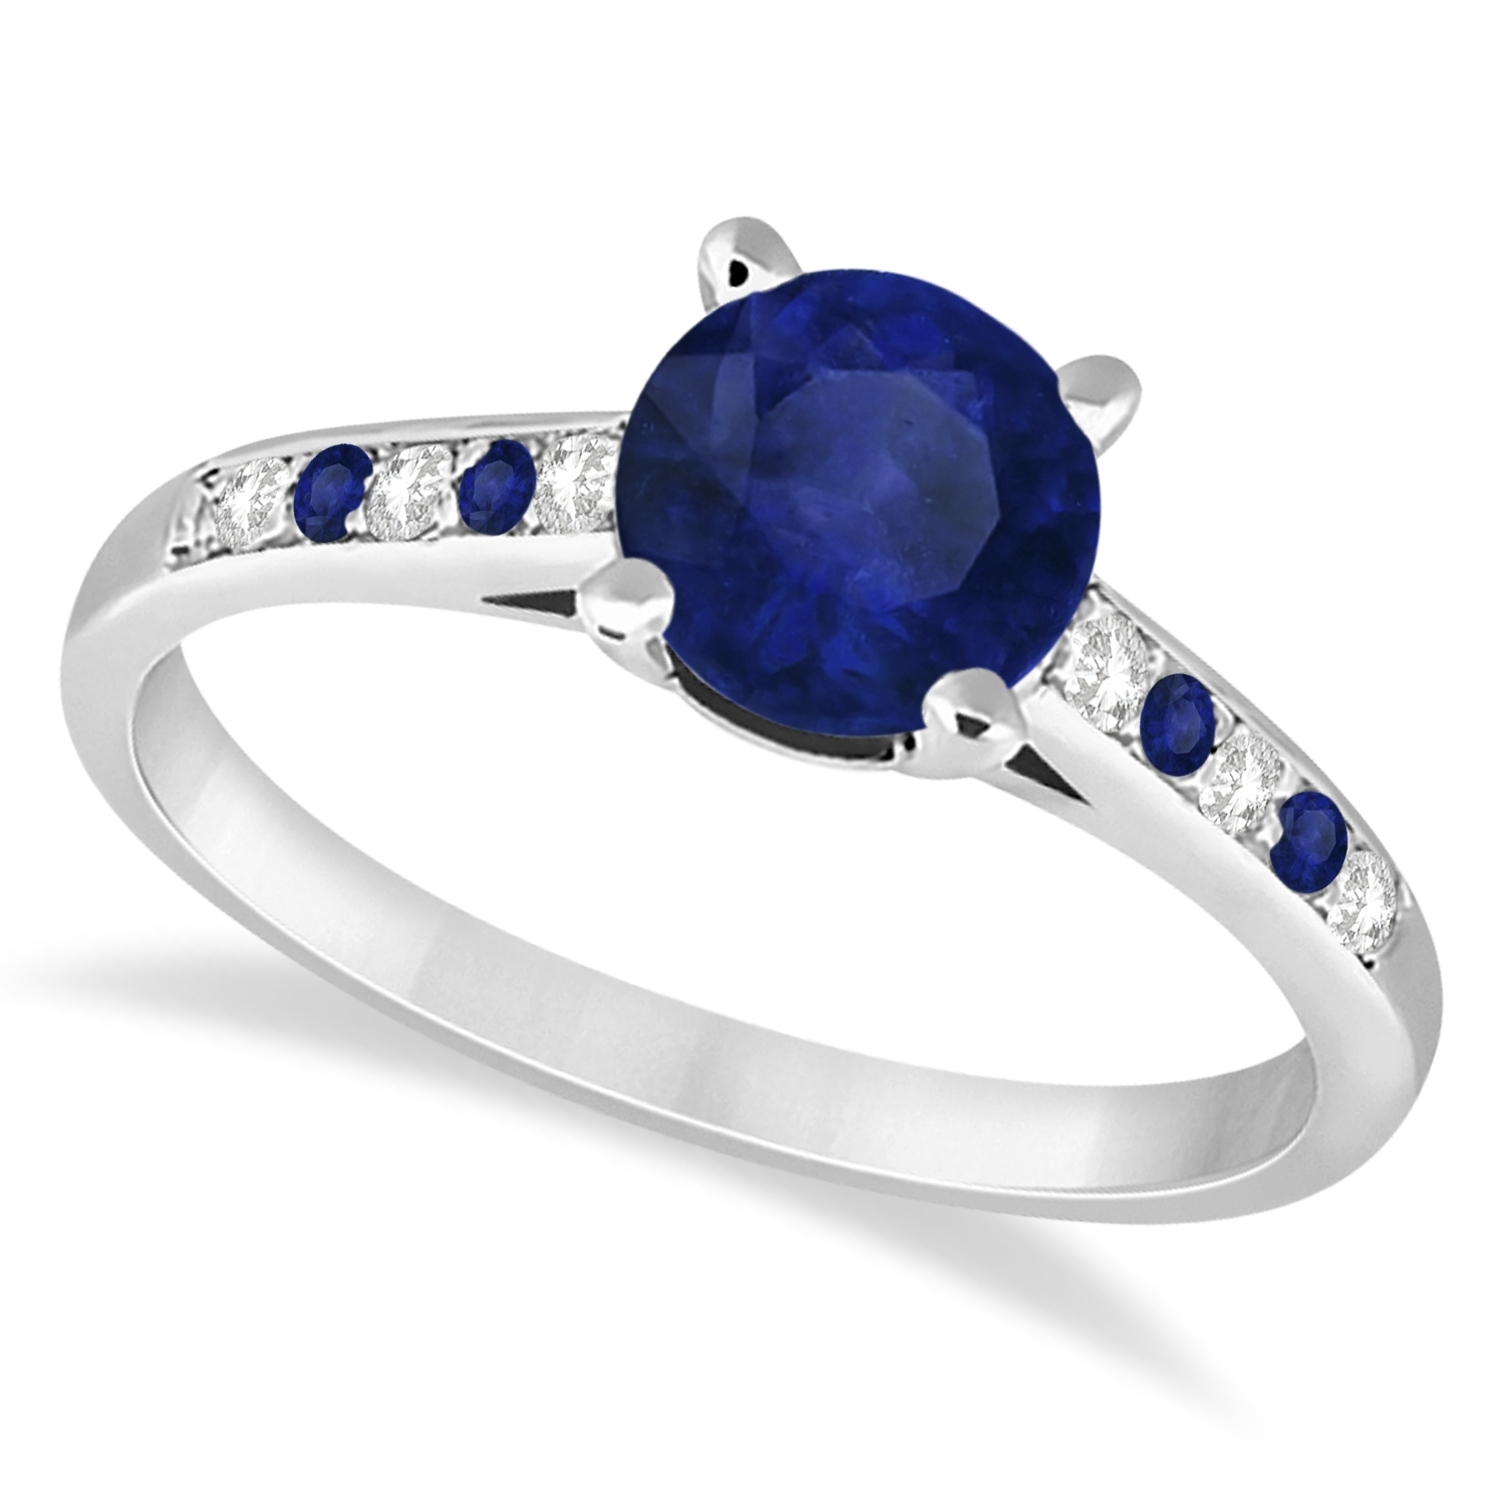 Cathedral Blue Sapphire & Diamond Engagement Ring 14k White Gold (View 11 of 15)